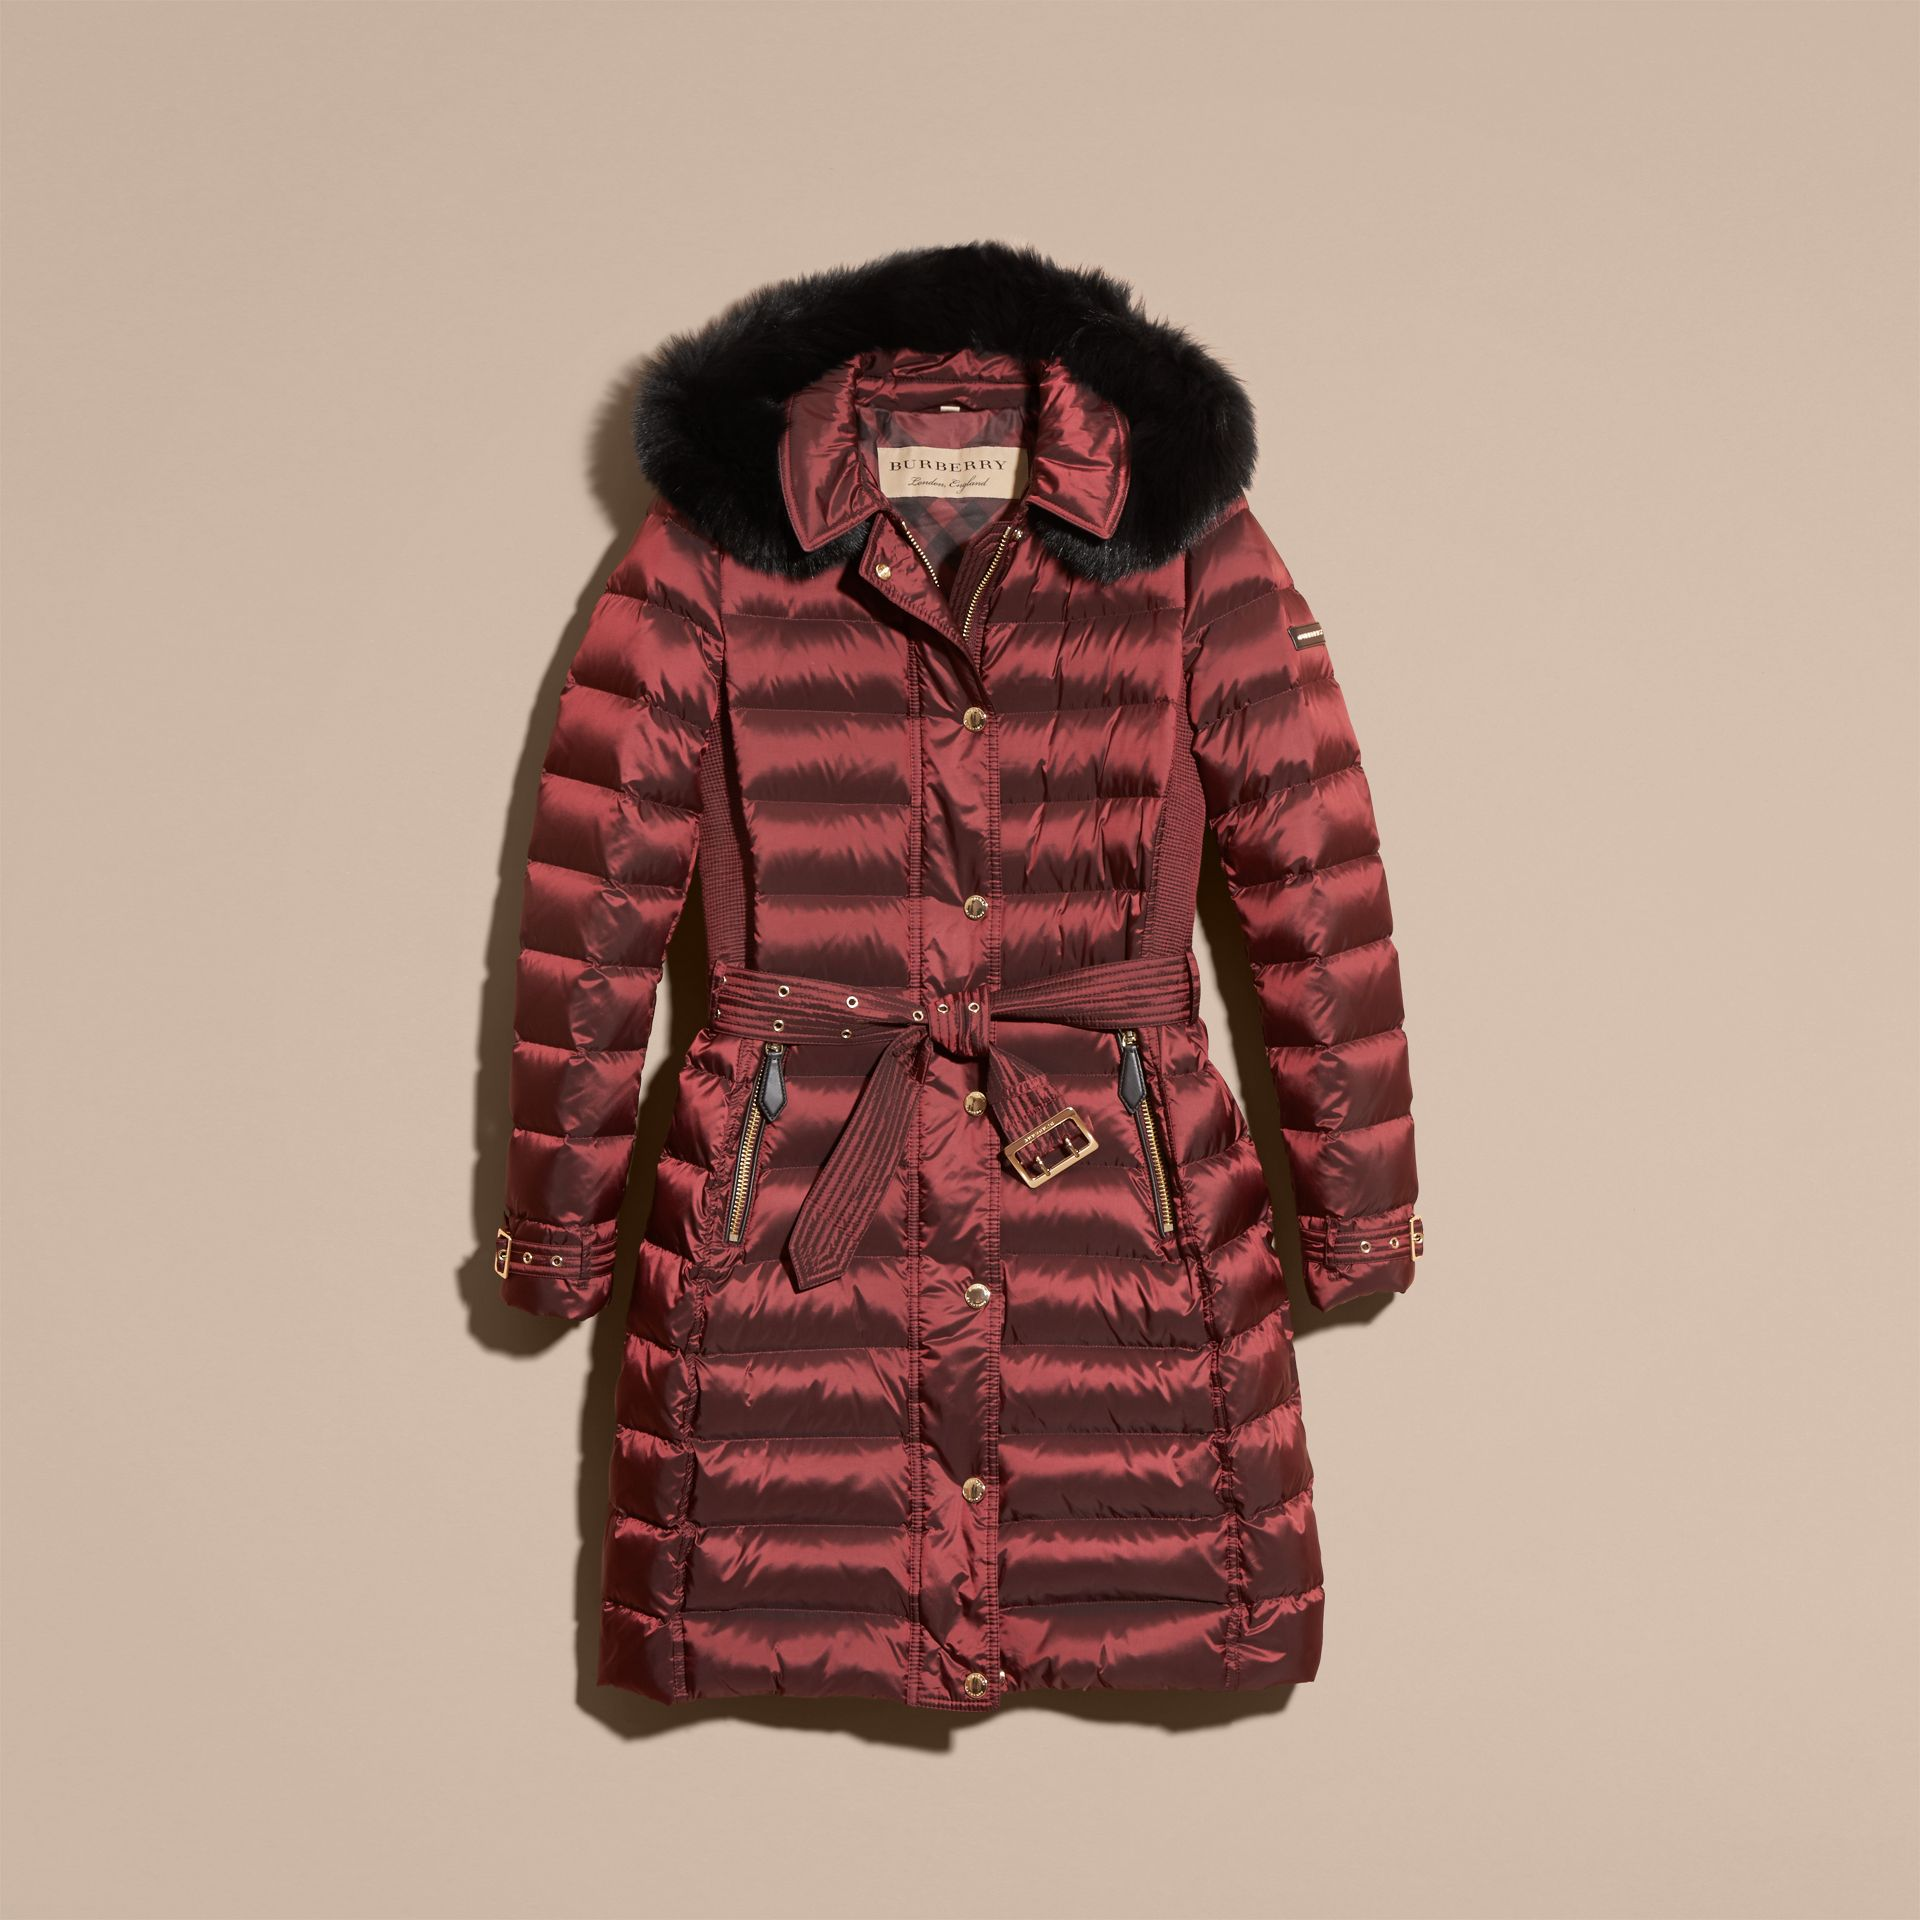 Down-filled Coat with Fox Fur Trim Hood in Burgundy - Women | Burberry - gallery image 4